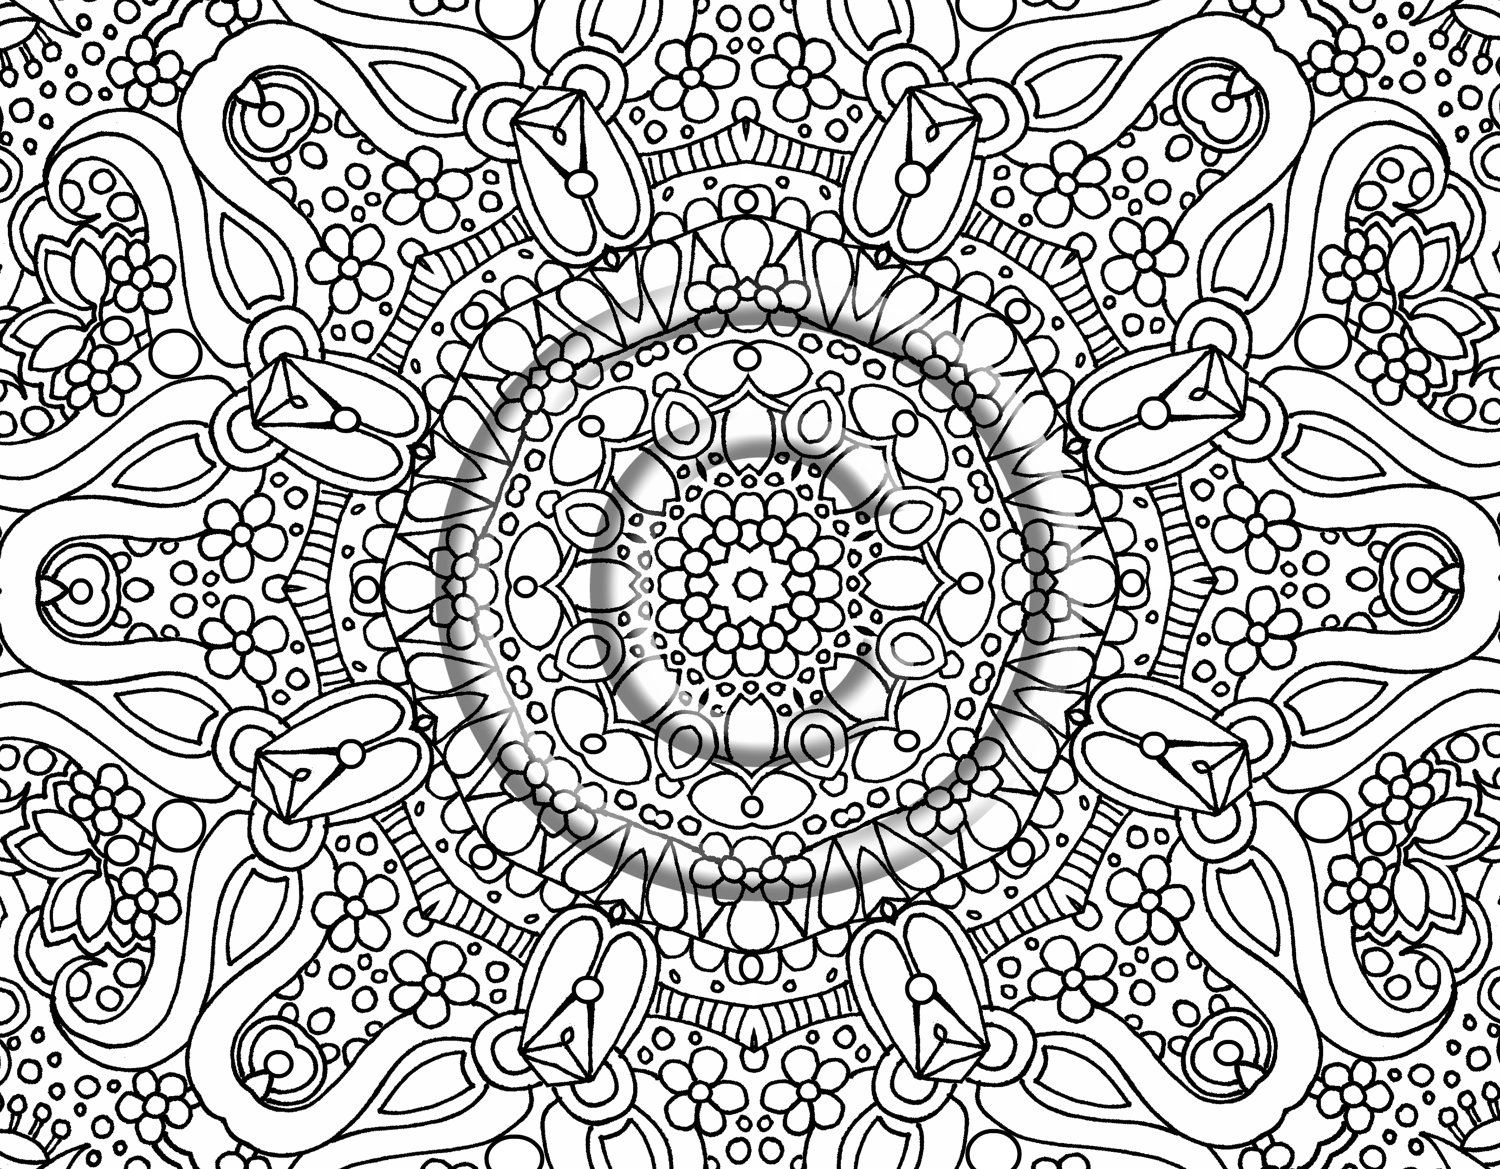 Free Printable Abstract Coloring Pages For Adults Coloring Page